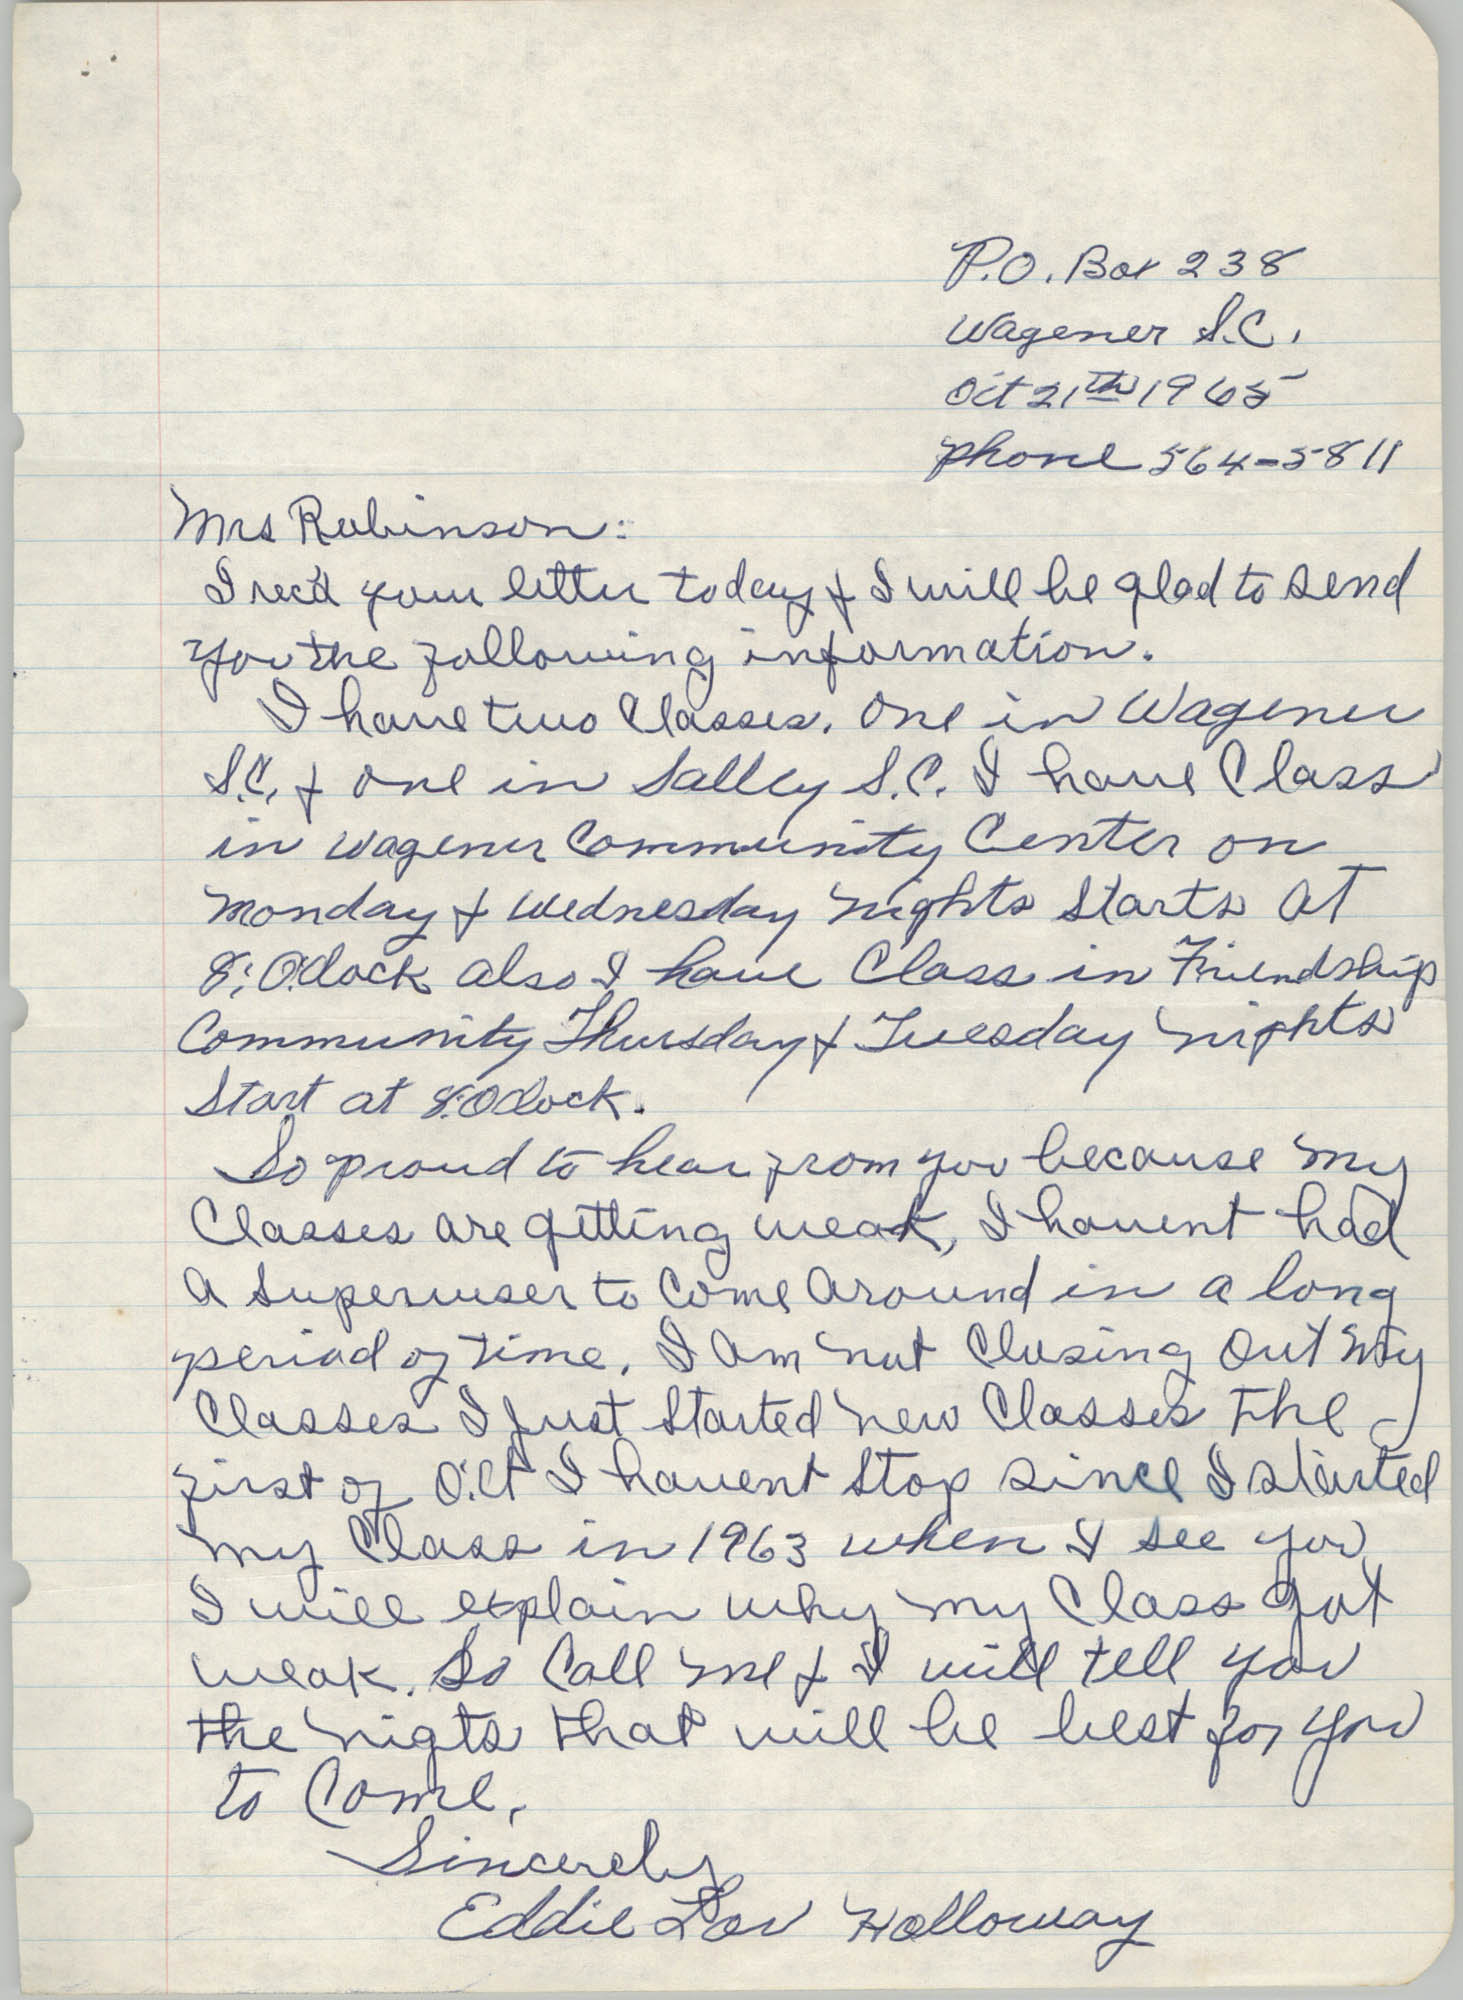 Letter from Eddie Holloway to Bernice Robinson, October 21, 1965